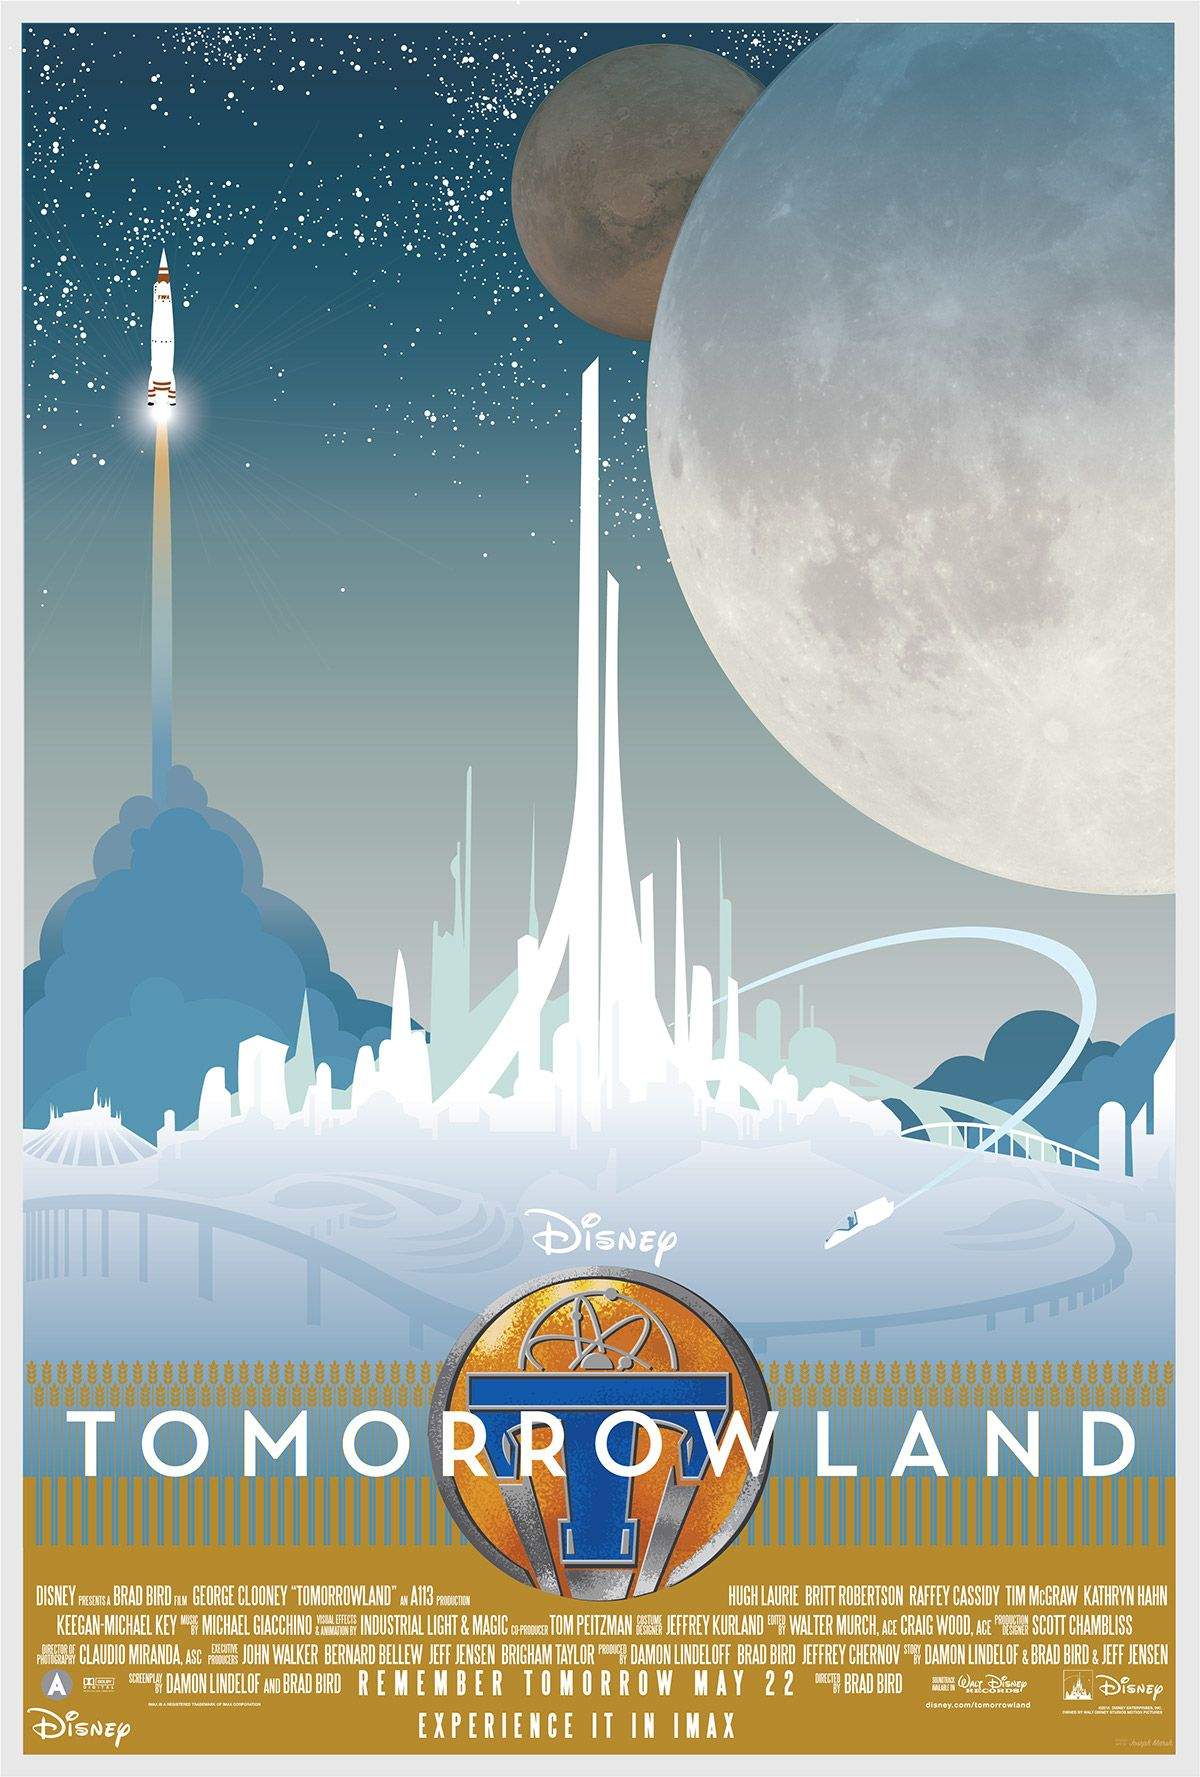 joseph marsh disney poster | Tomorrowland fan-art poster courtesy of Joseph Marsh. Check out more ...